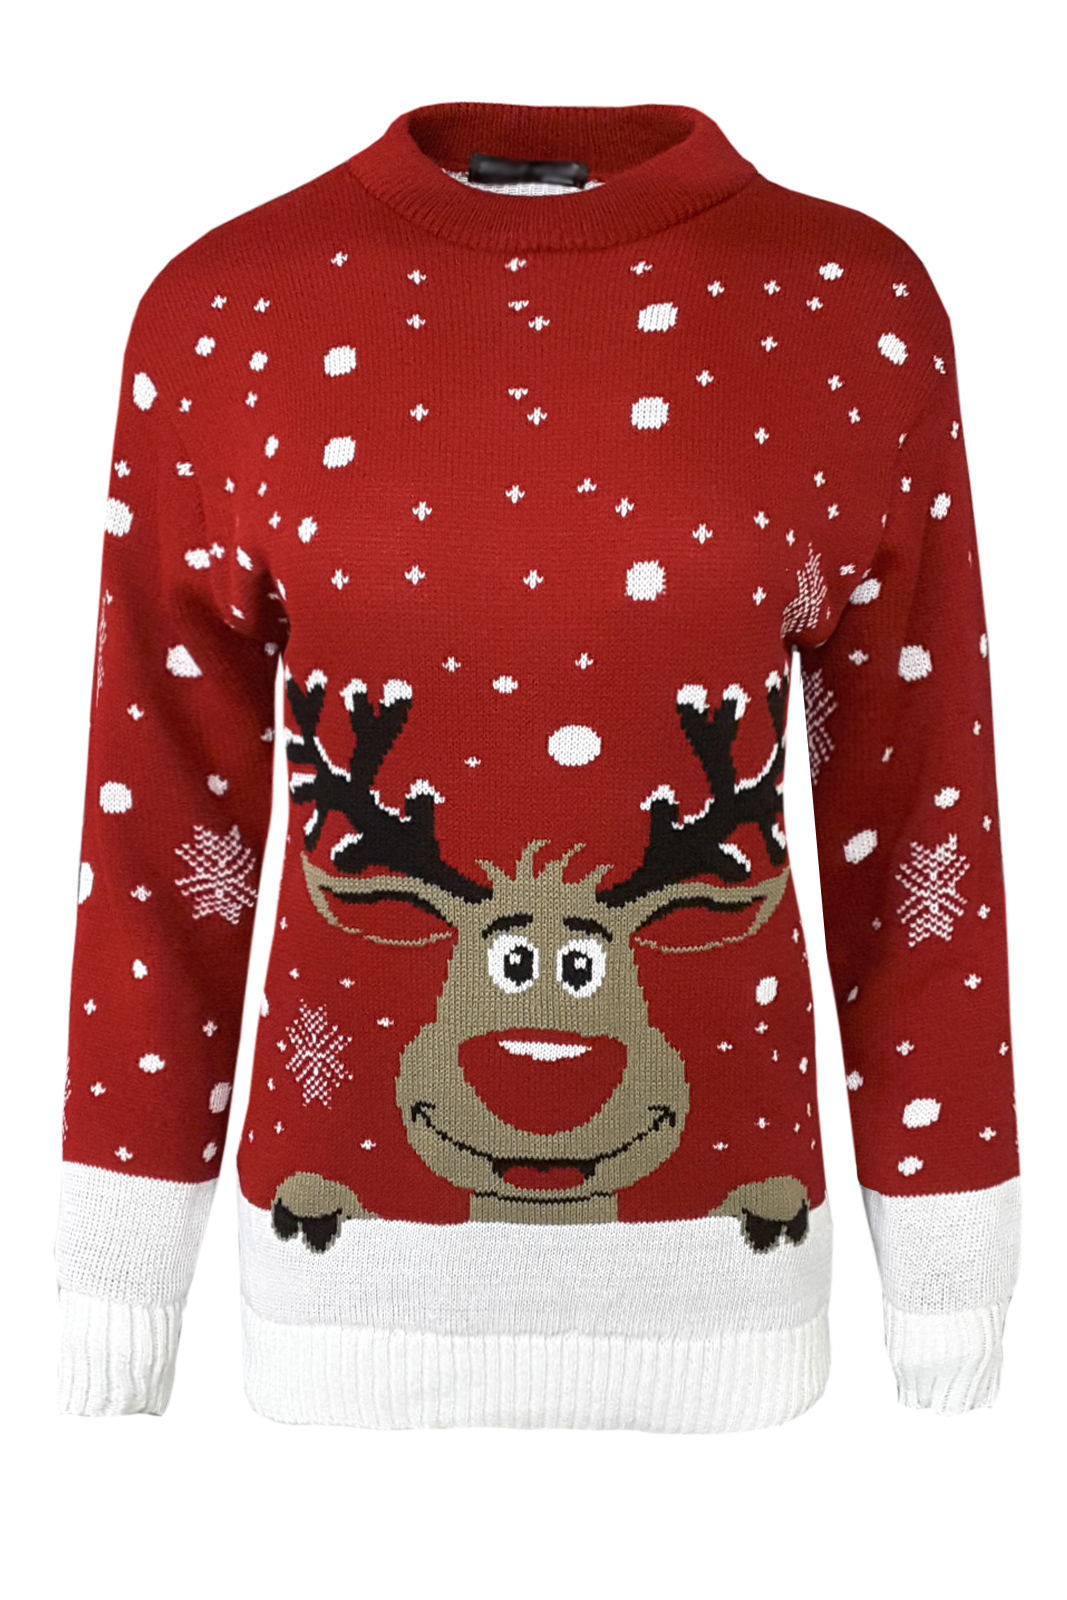 Christmas Novelty Jumper Knitting Patterns : New ladies christmas print extra thick knitted sweater